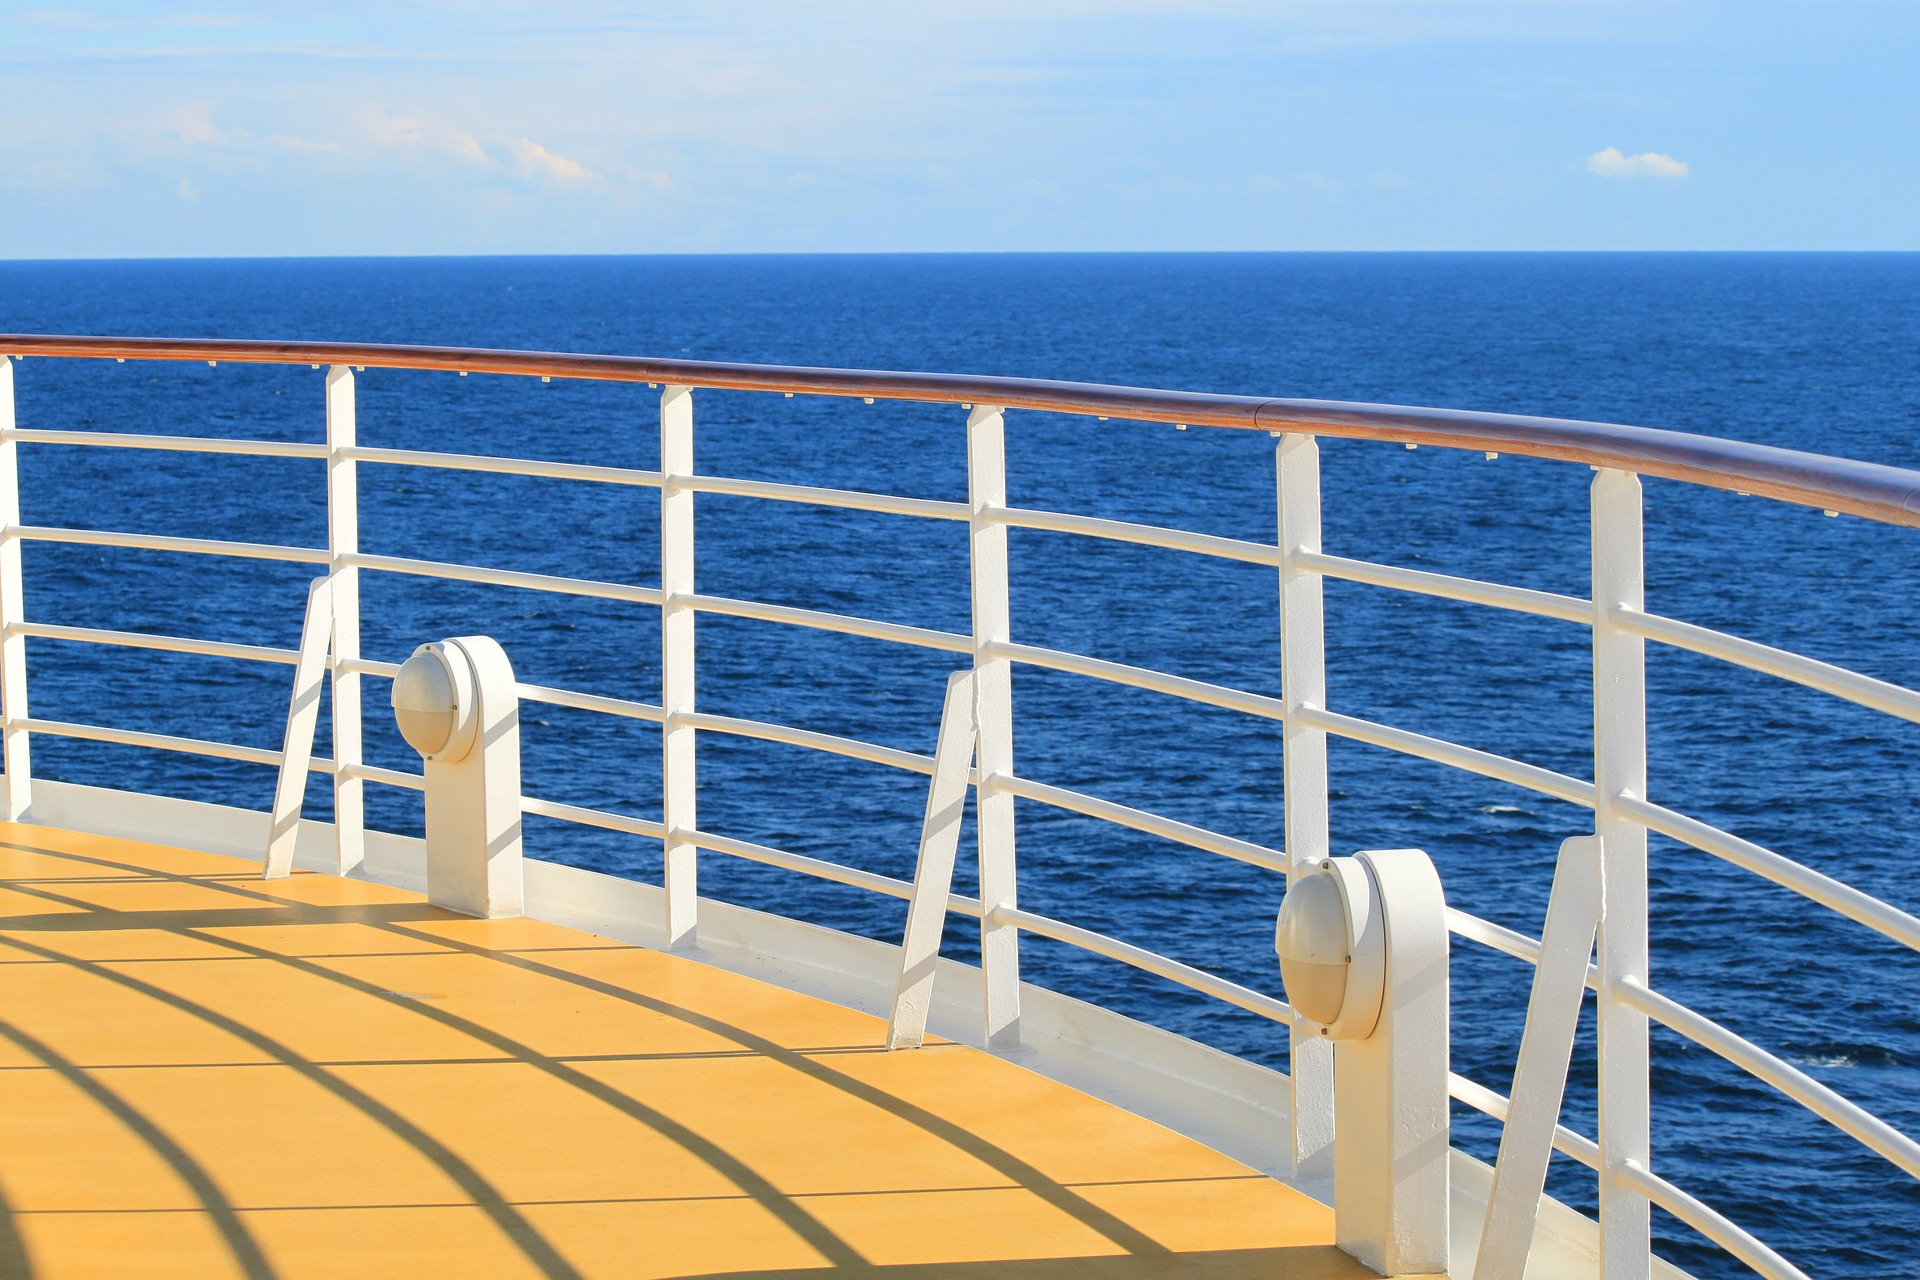 July 24: At Sea - Spend the day relaxing and exploring this massive cruise ship. Lounge by one of their many pools or enjoy a day in the spa or try your luck in the onboard casino.